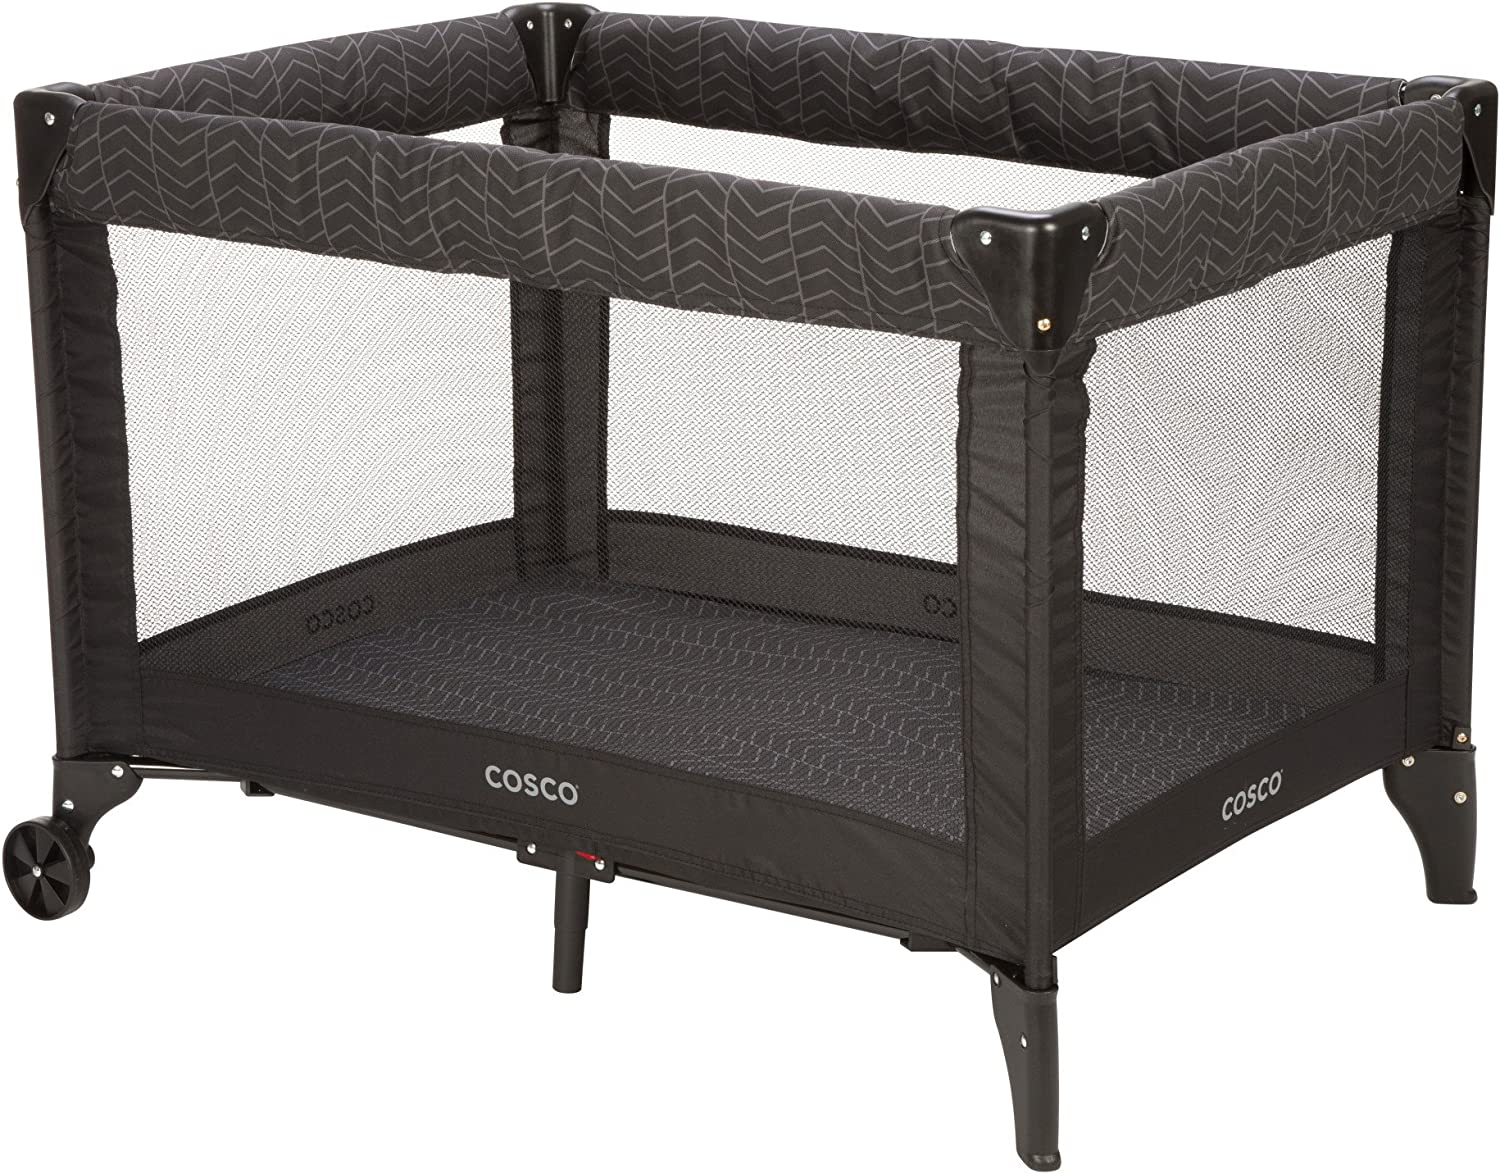 Cosco Deluxe Funsport Play Yard, Black Arrows